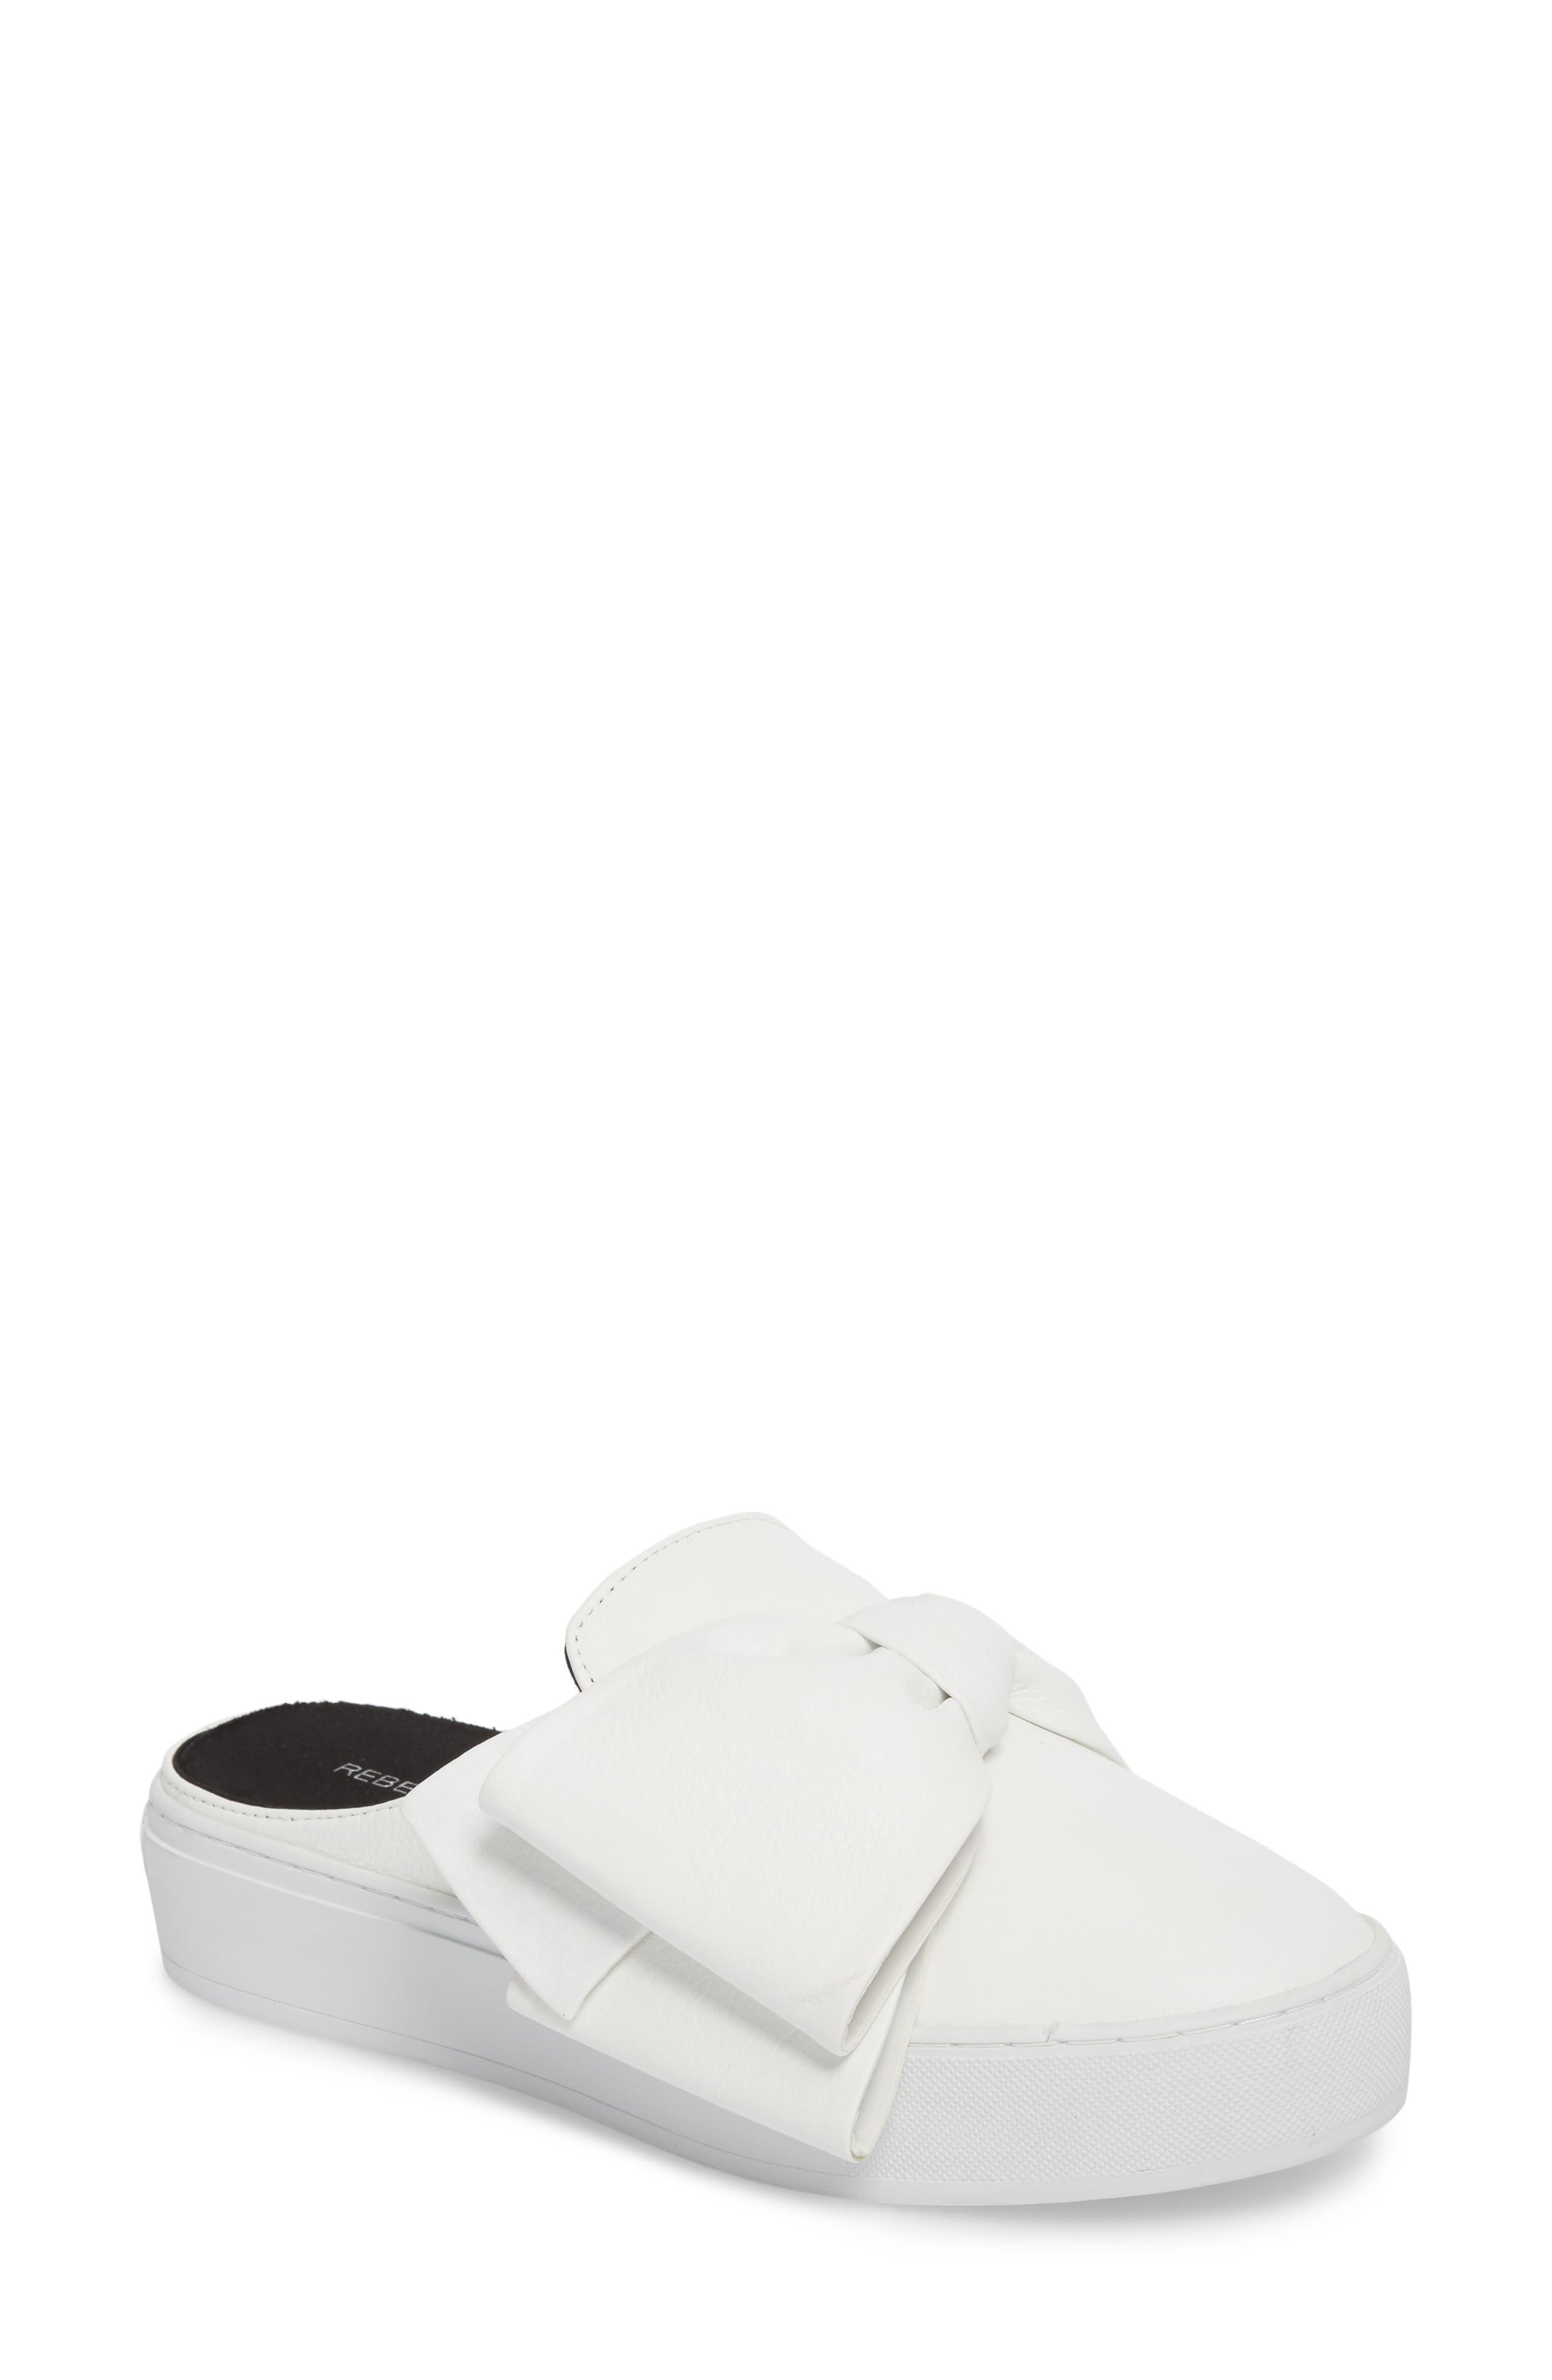 Alternate Image 1 Selected - Rebecca Minkoff Neva Sneaker Mule (Women)